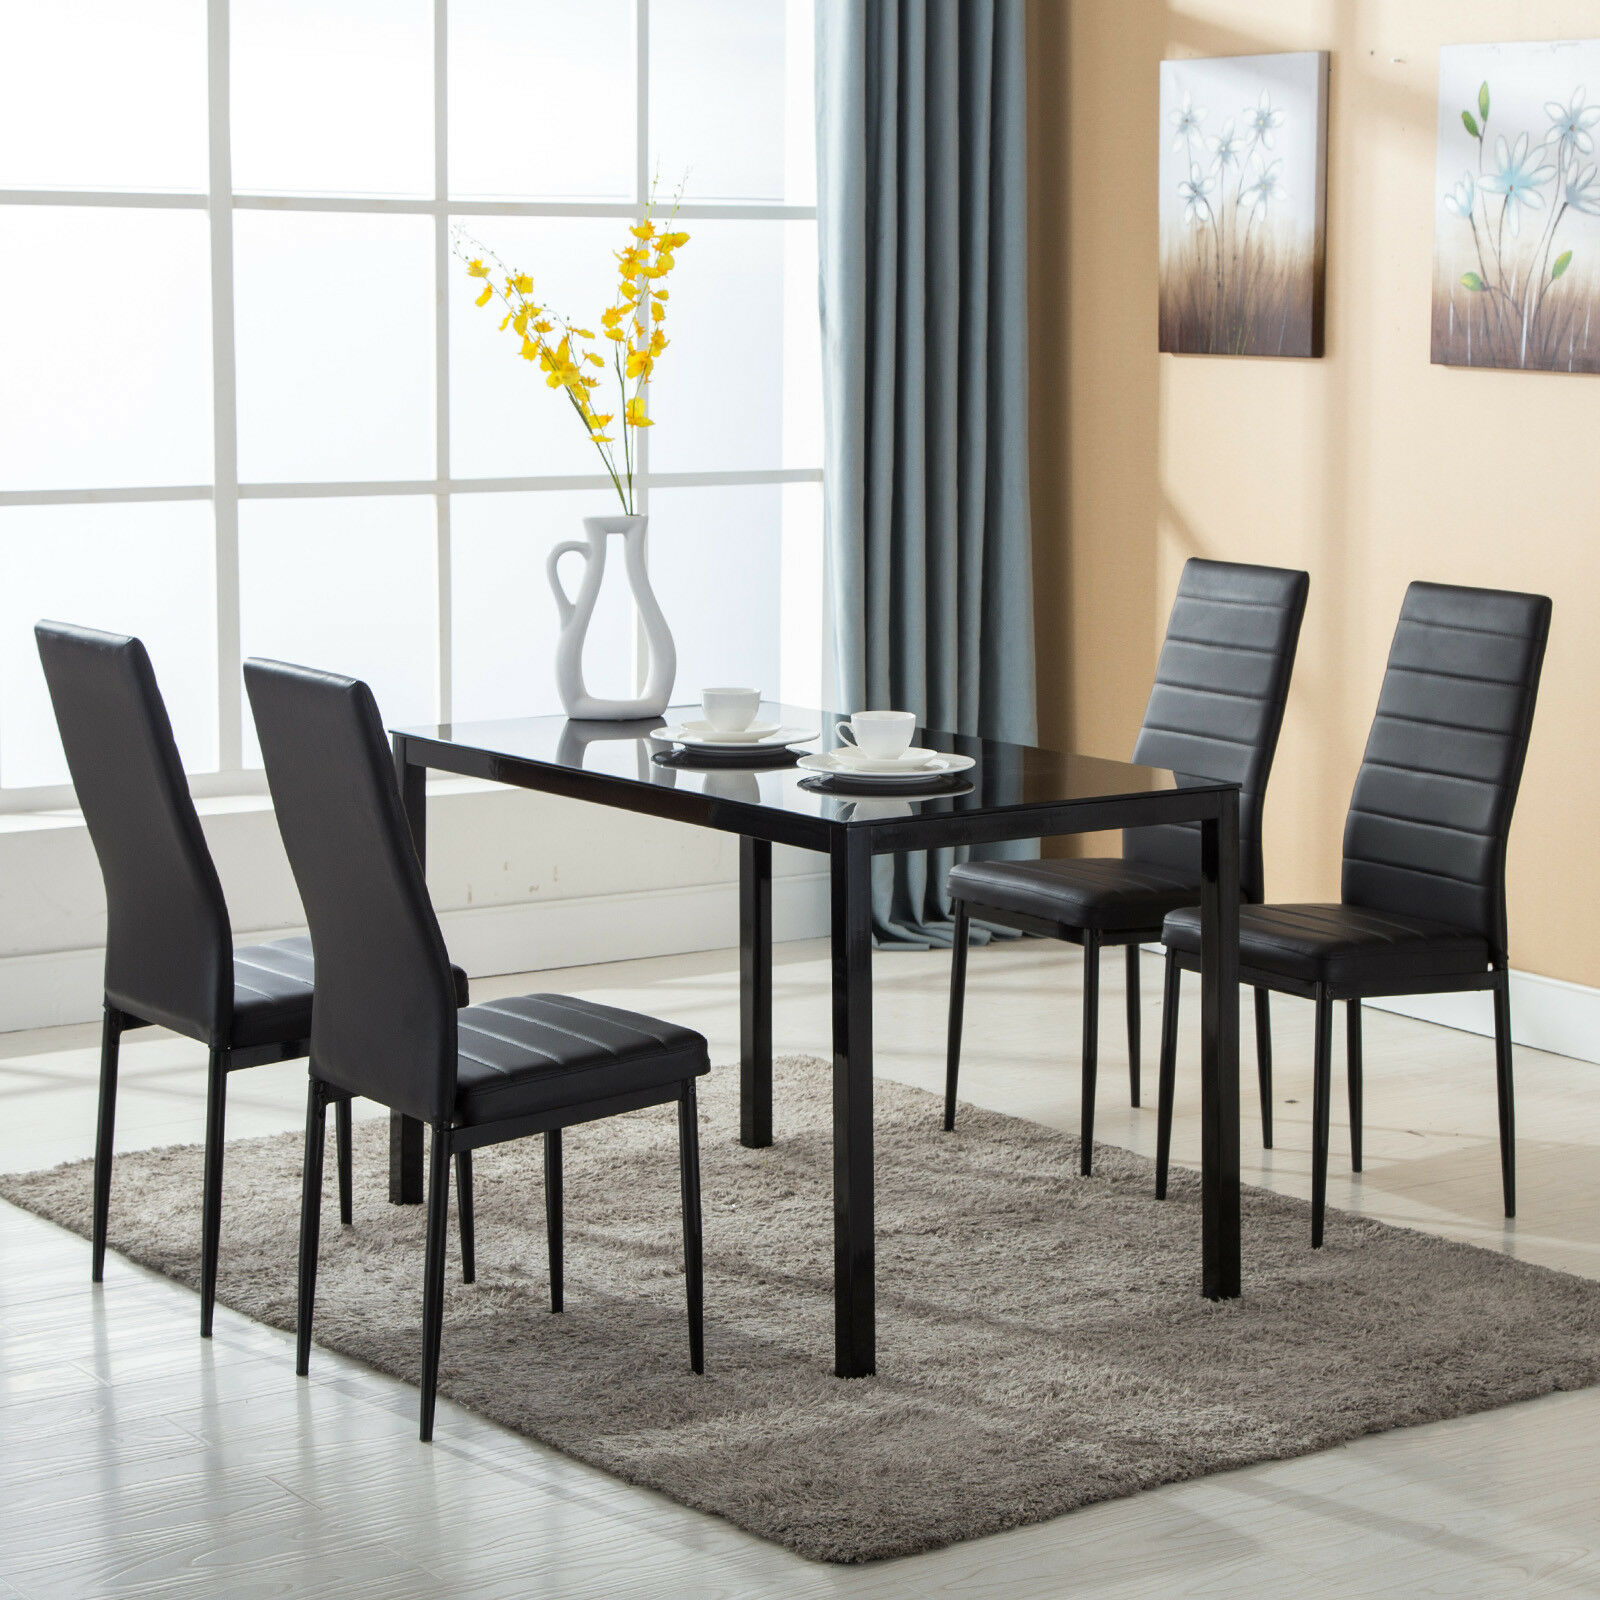 Breakfast Chairs Details About 5 Piece Dining Table Set 4 Chairs Glass Metal Kitchen Room Breakfast Furniture